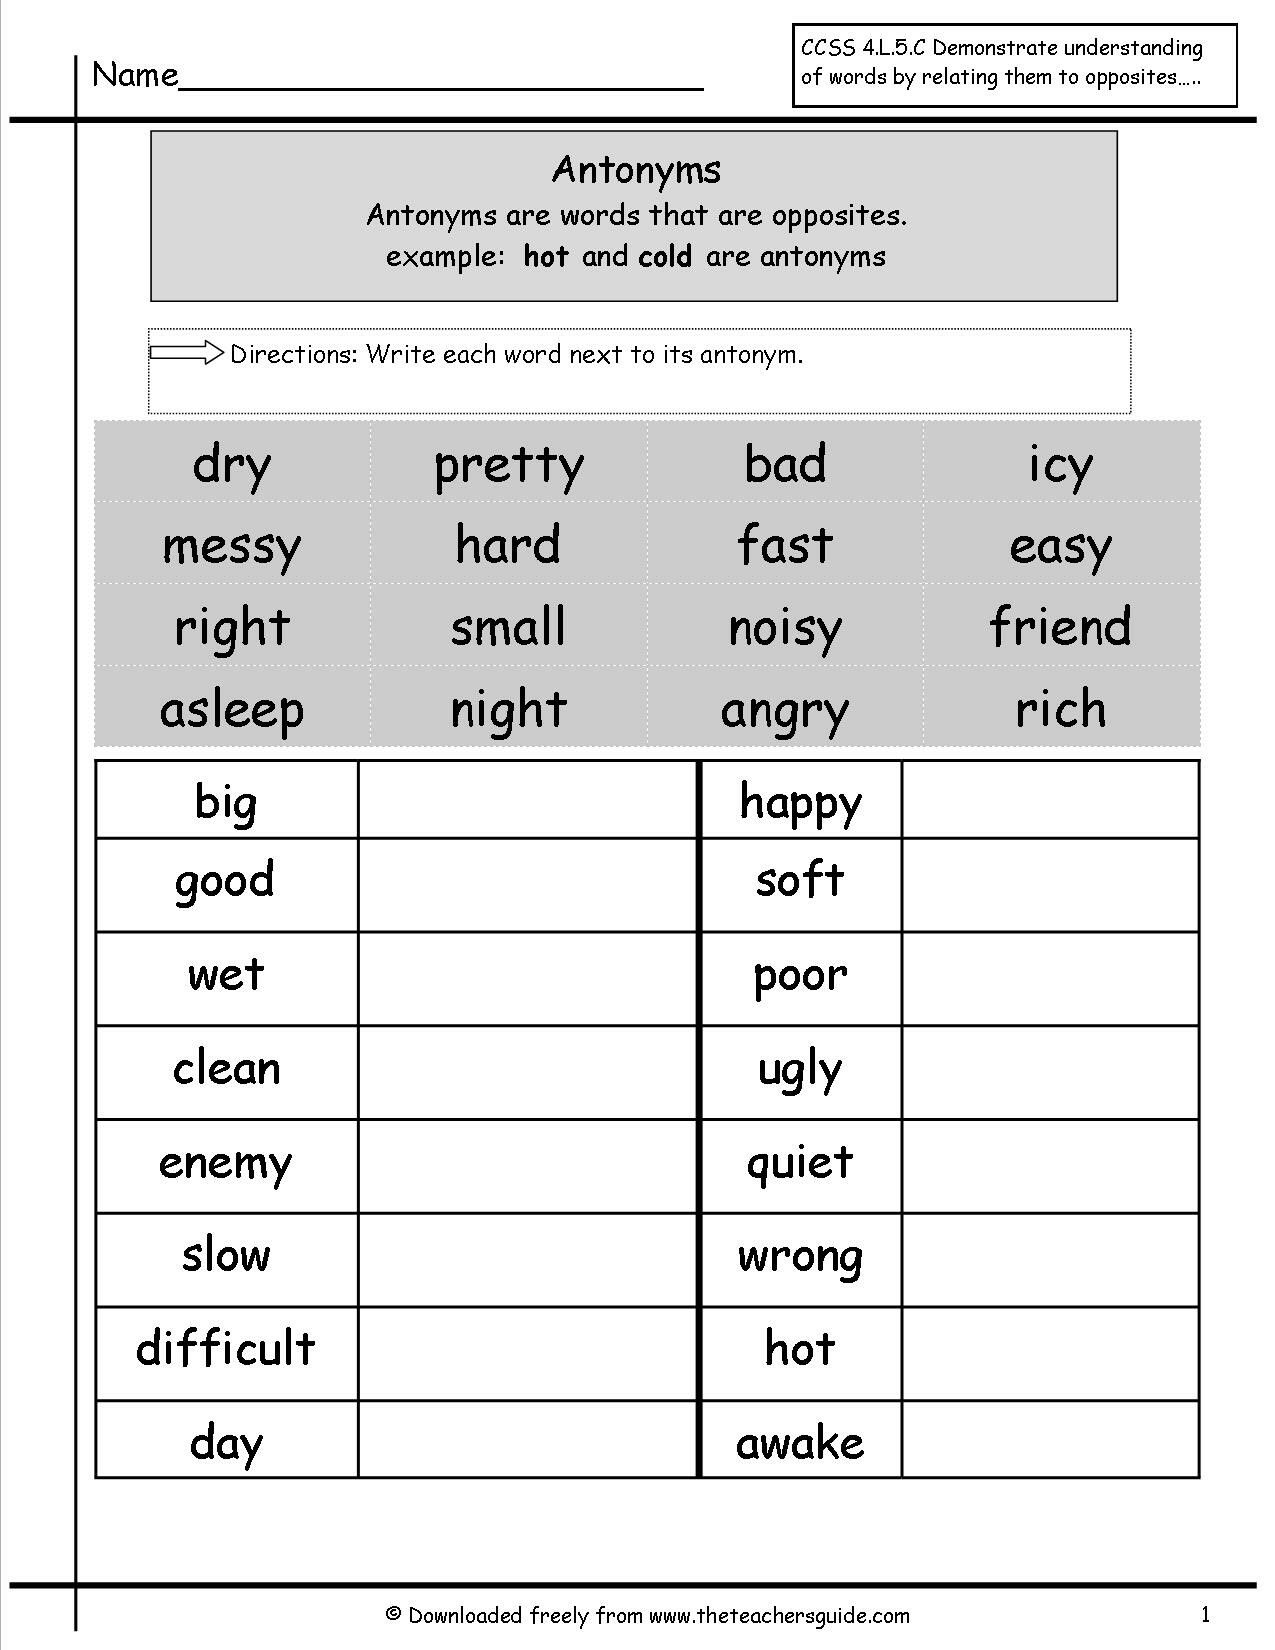 Pin by Asmaa AL-Absi on Vocabulary worksheets | Pinterest | English ...